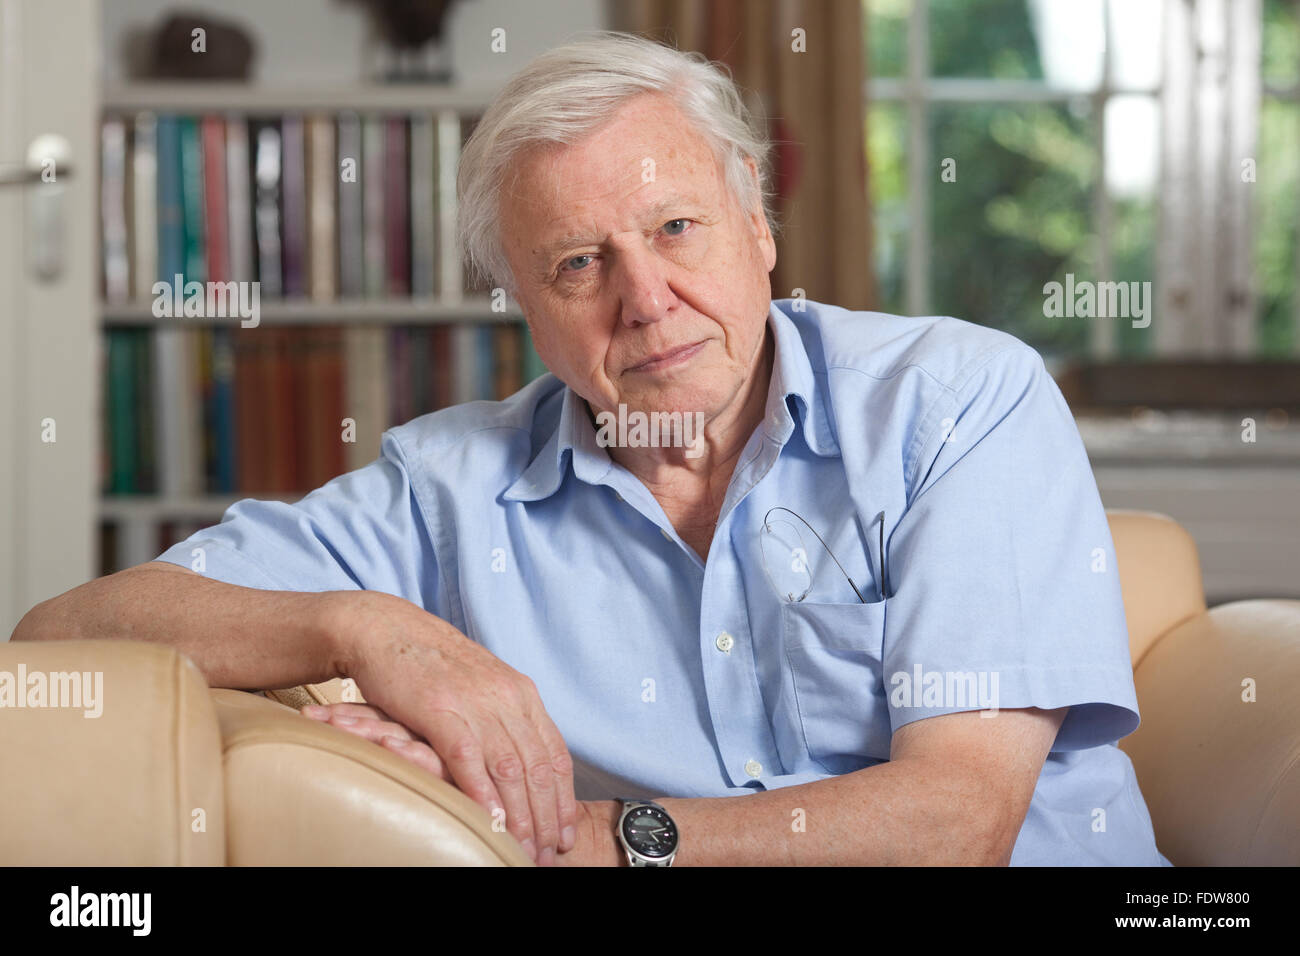 Sir David Attenborough English Broadcaster And Naturalist